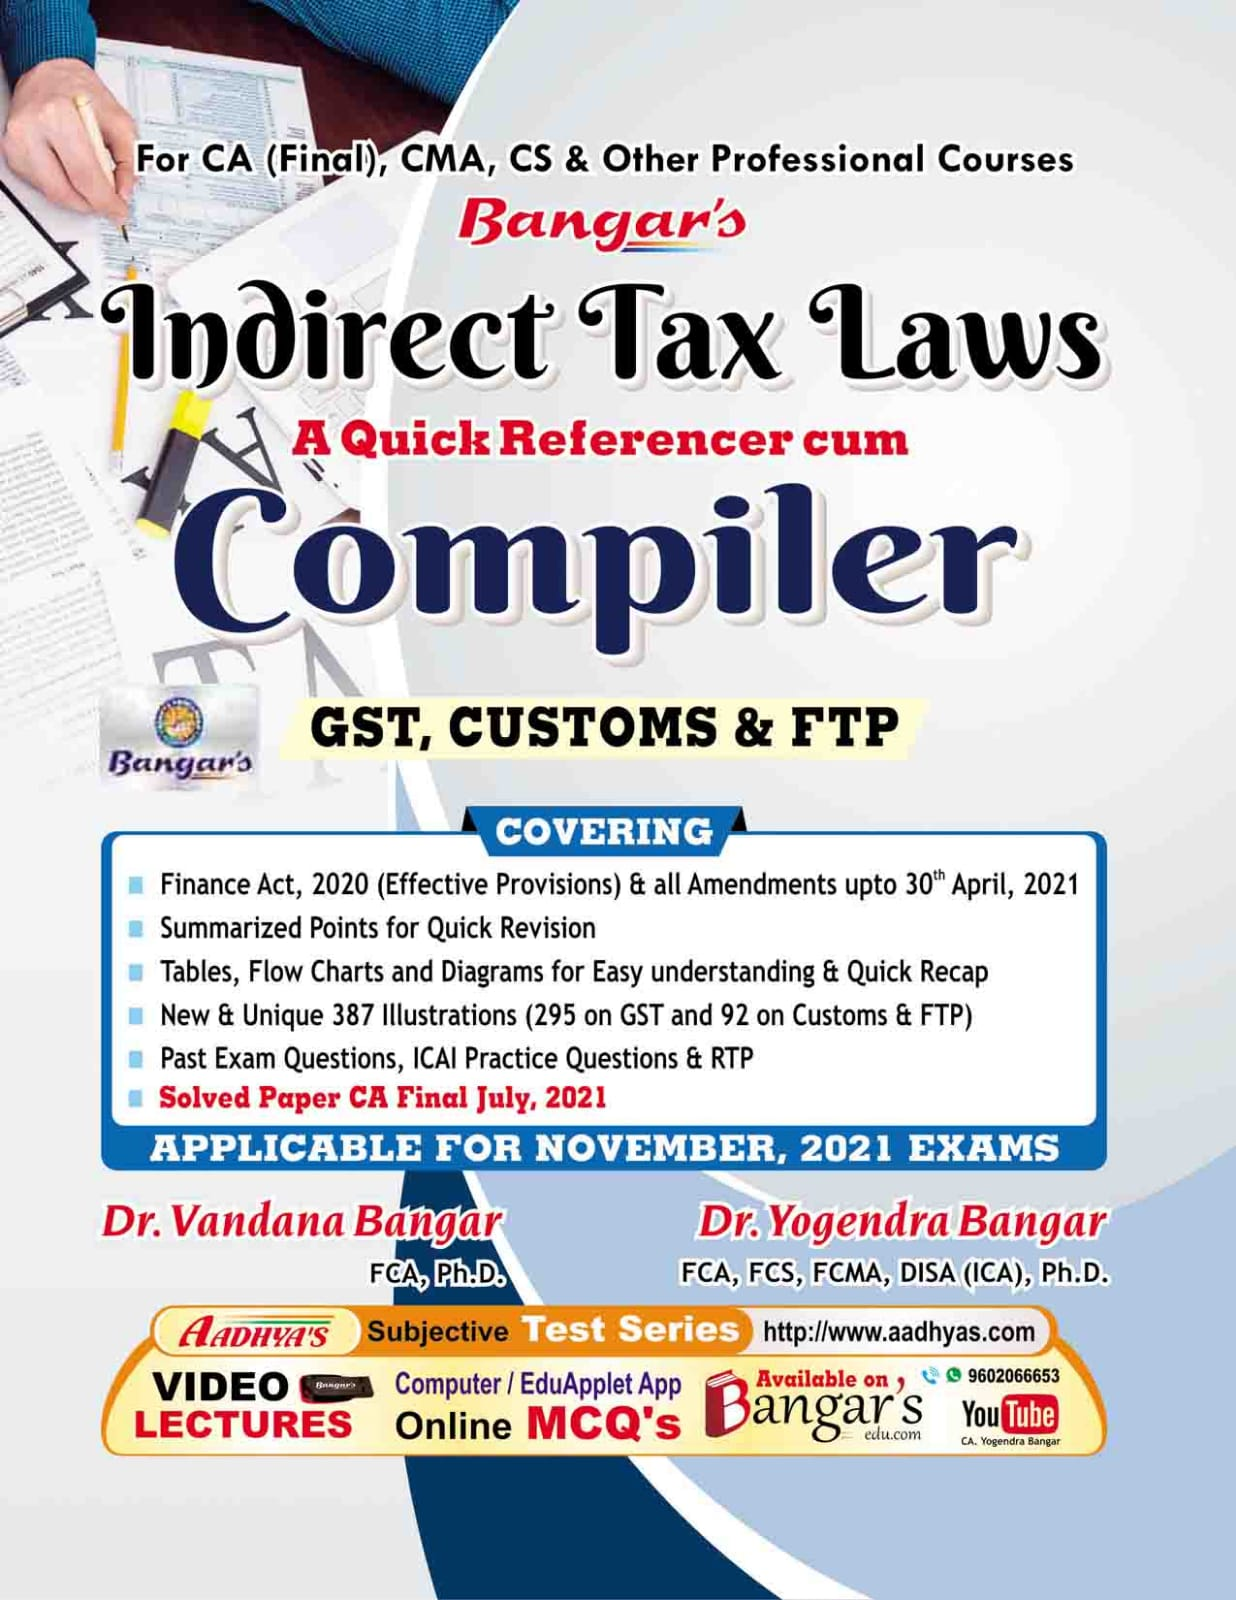 Bangar's Comprehensive Guide to Indirect Taxes Laws Quick referencer cum Compiler for CA Final By Dr. Yogendra Bangar and Dr. Vandana Bangar (Aadhya Prakashan Publishing) for 2021 Exam